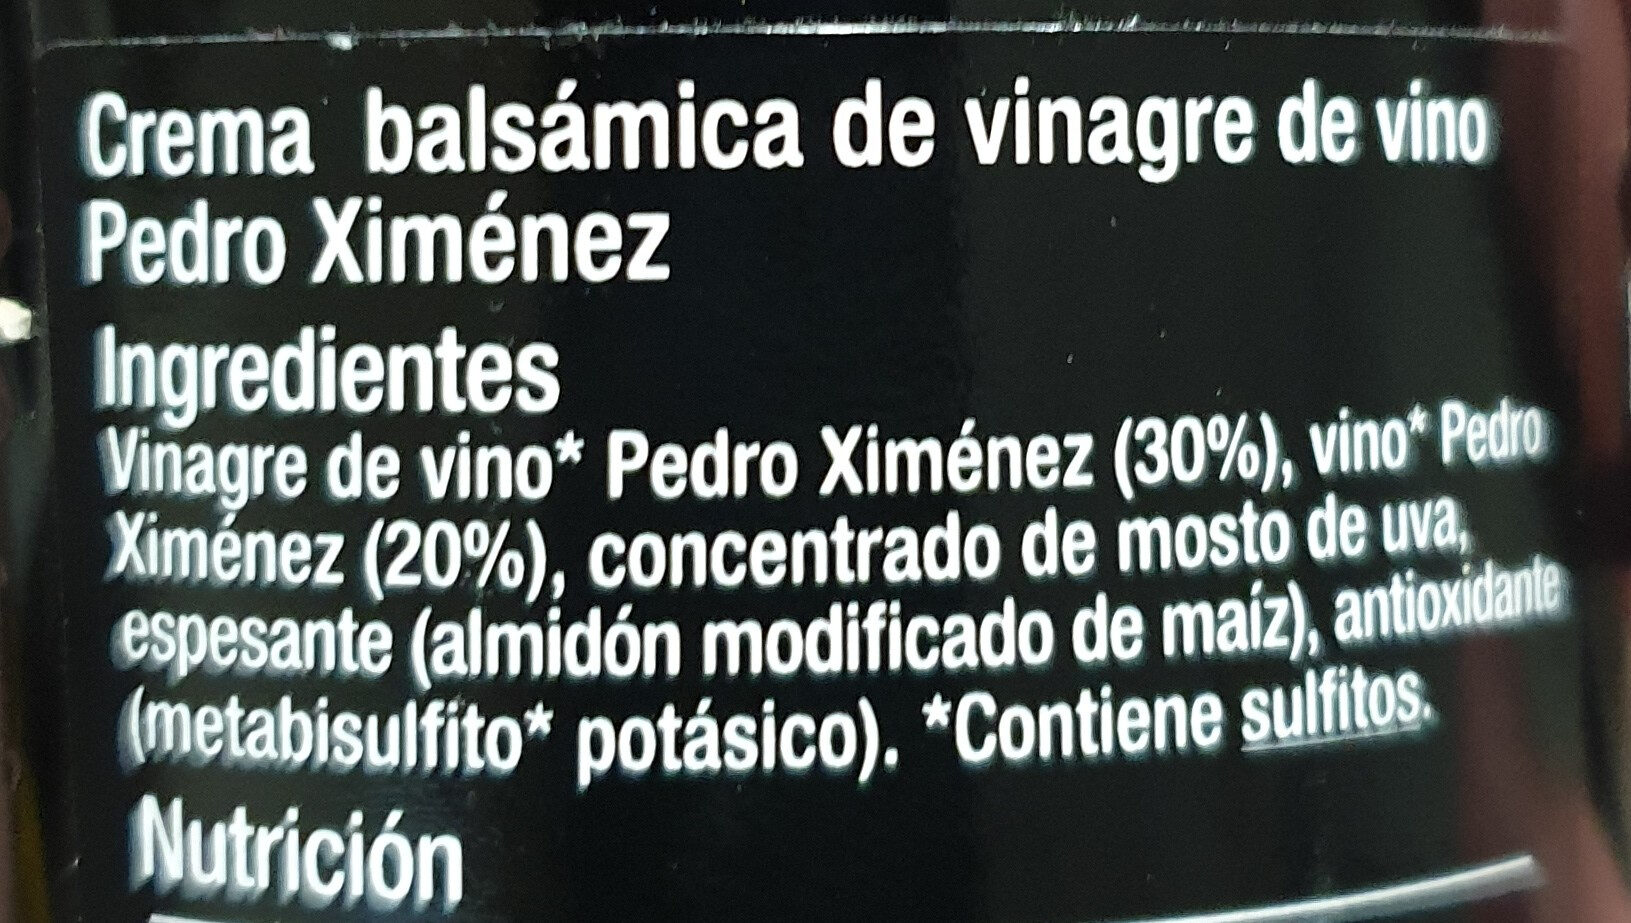 Glasé vinagre pximenez - Ingredients - es